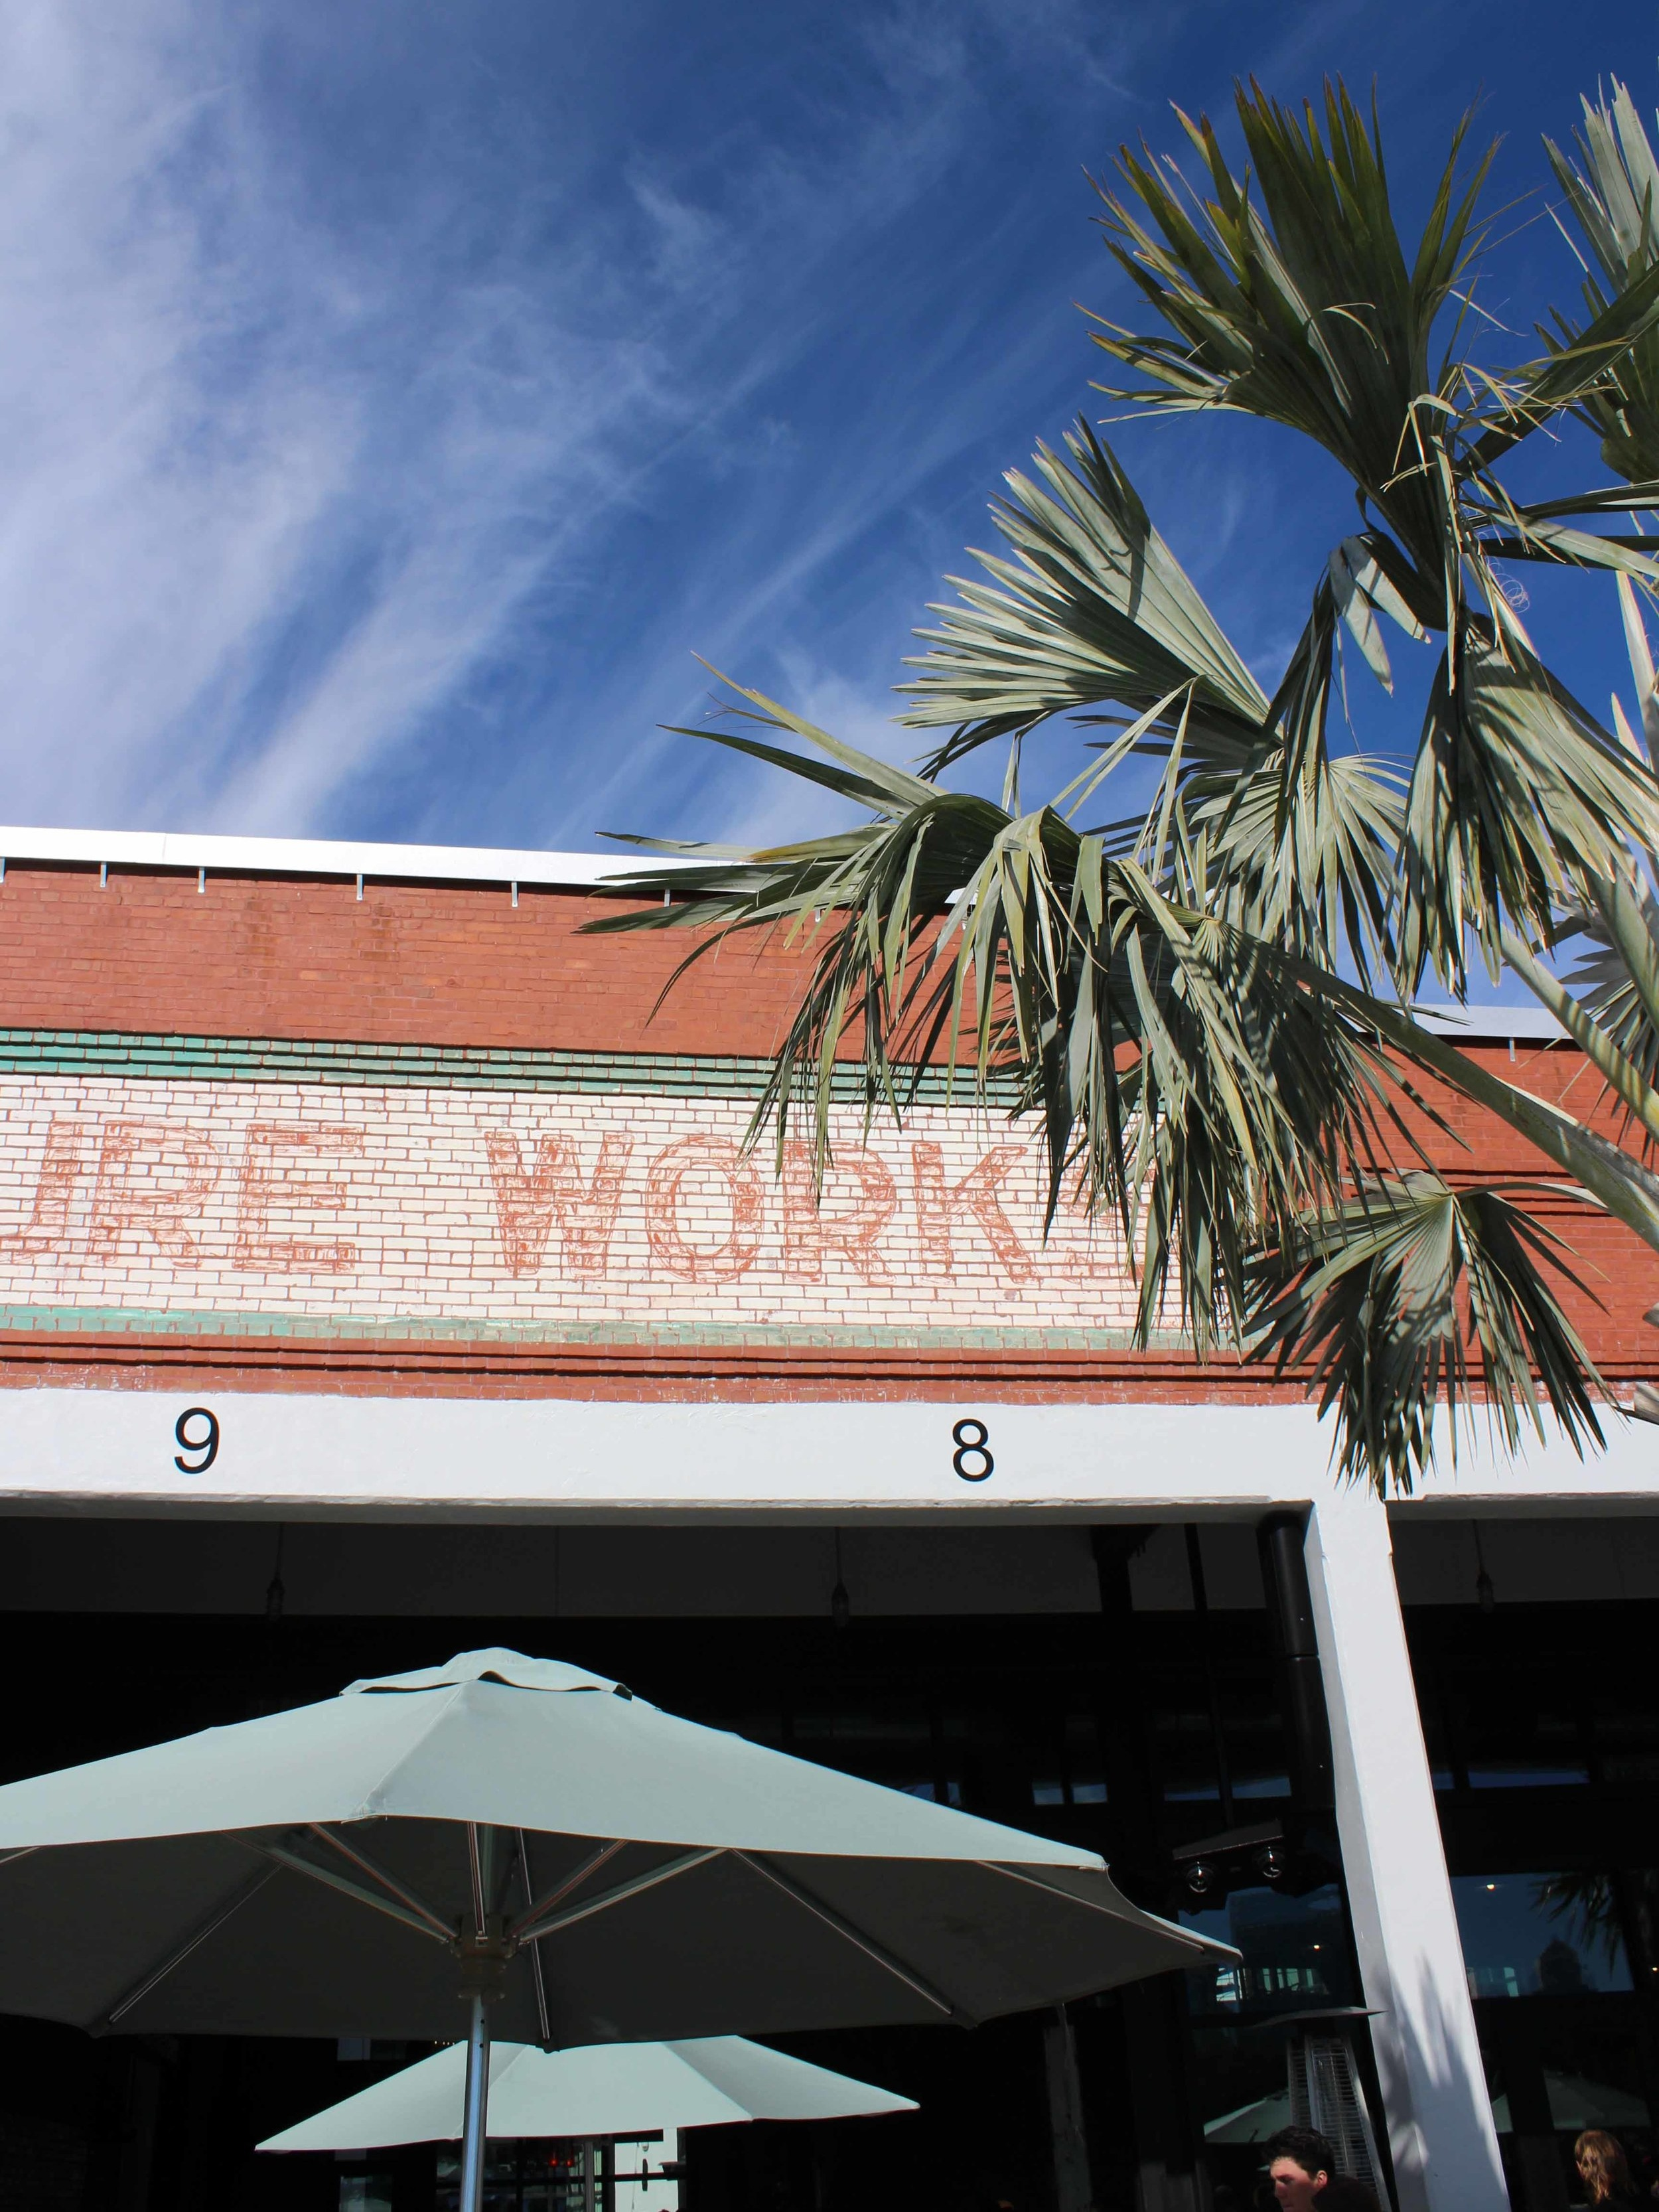 Tampa's hip new foodhall and hangout, Armature Works